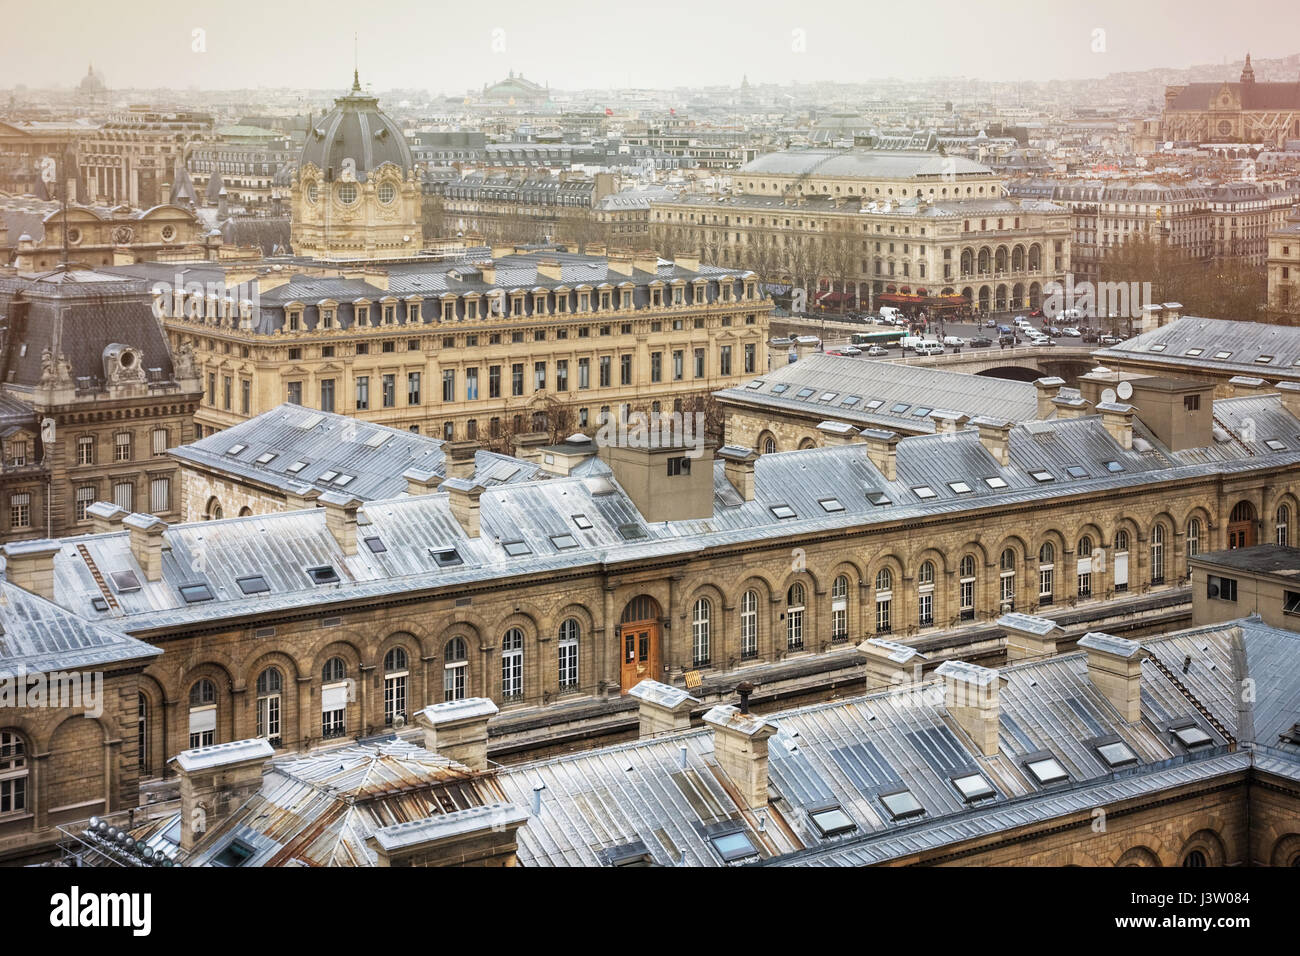 Spectacular image of Paris roofs from Cathedral Notre-Dame de Paris. Hopital Hotel-Dieu, above and Registry of the - Stock Image